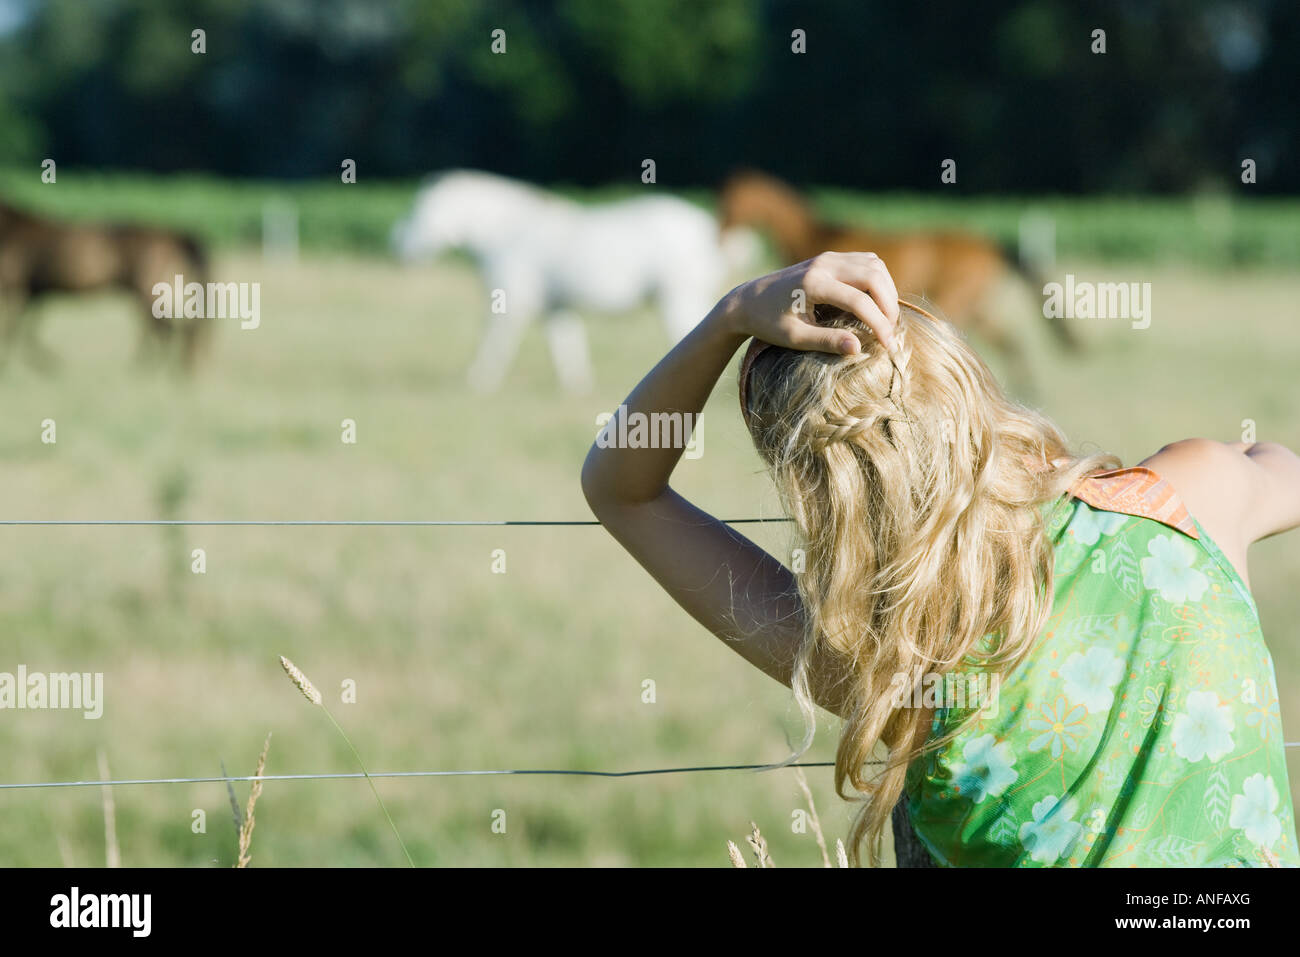 Young woman with hand in hair looking at horses in rural field, rear view - Stock Image